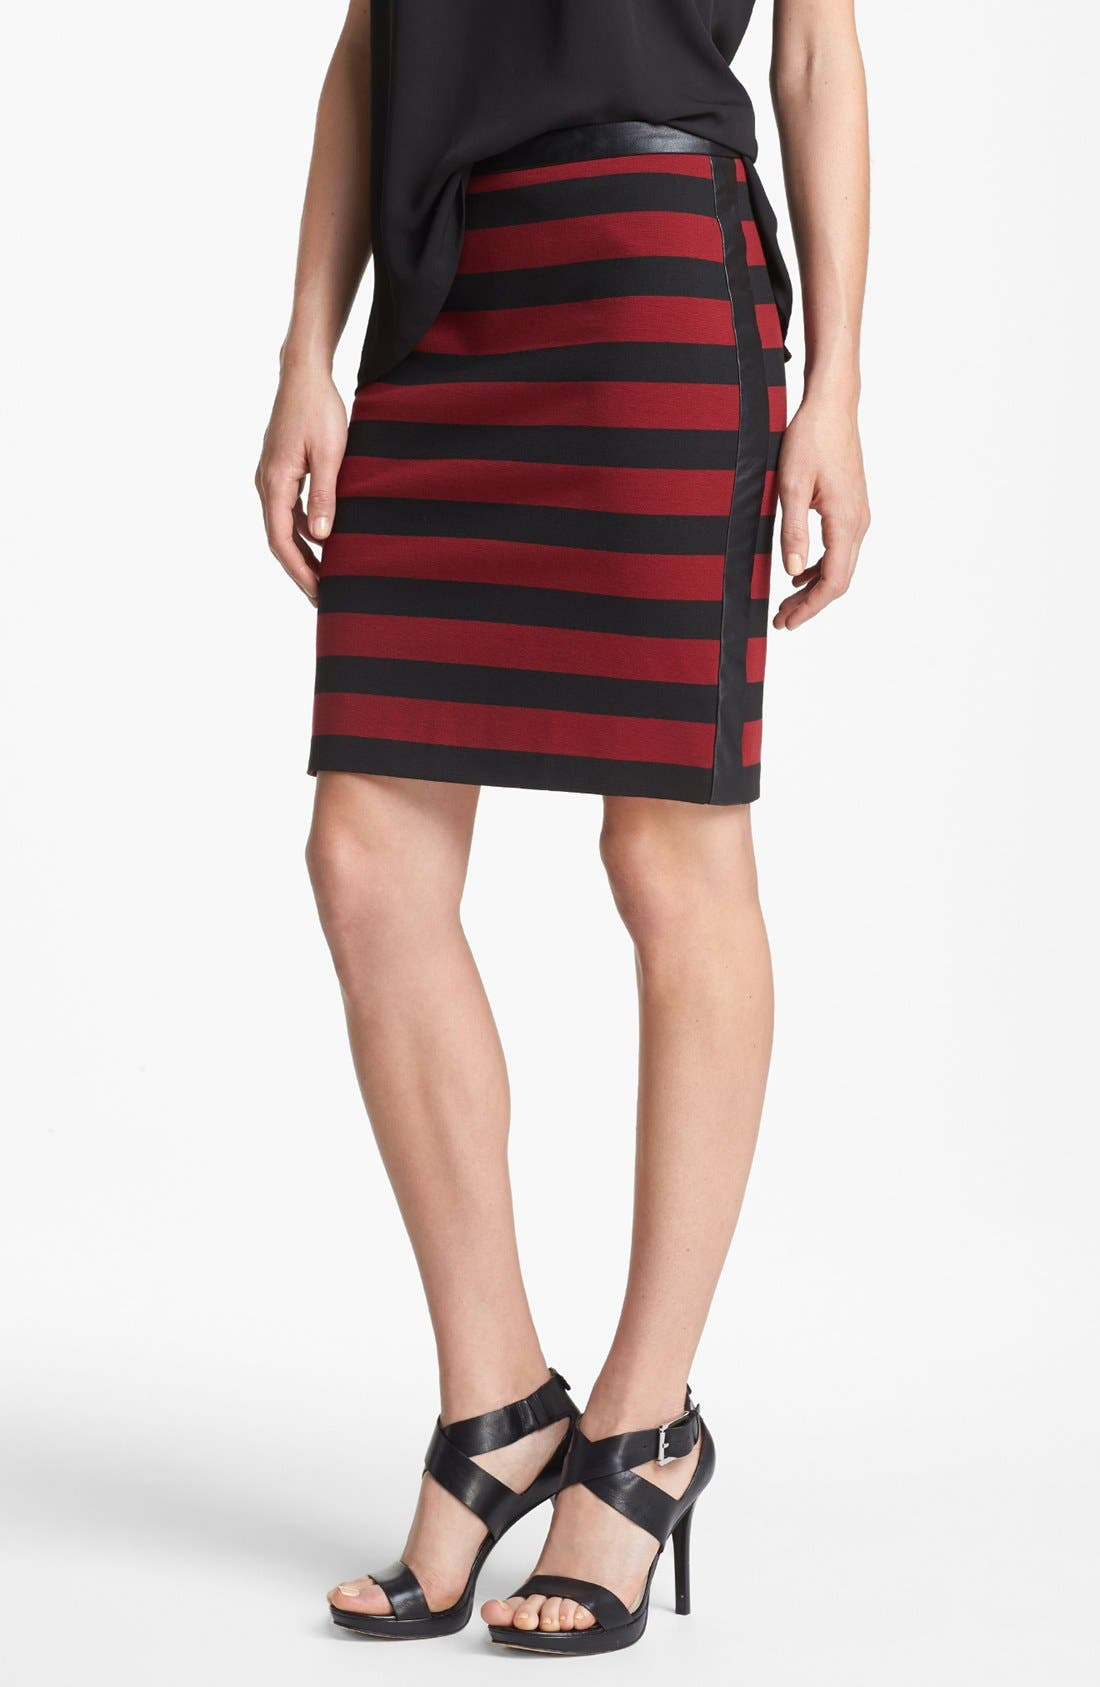 Alternate Image 1 Selected - Vince Camuto Faux Leather Trim Stripe Pencil Skirt